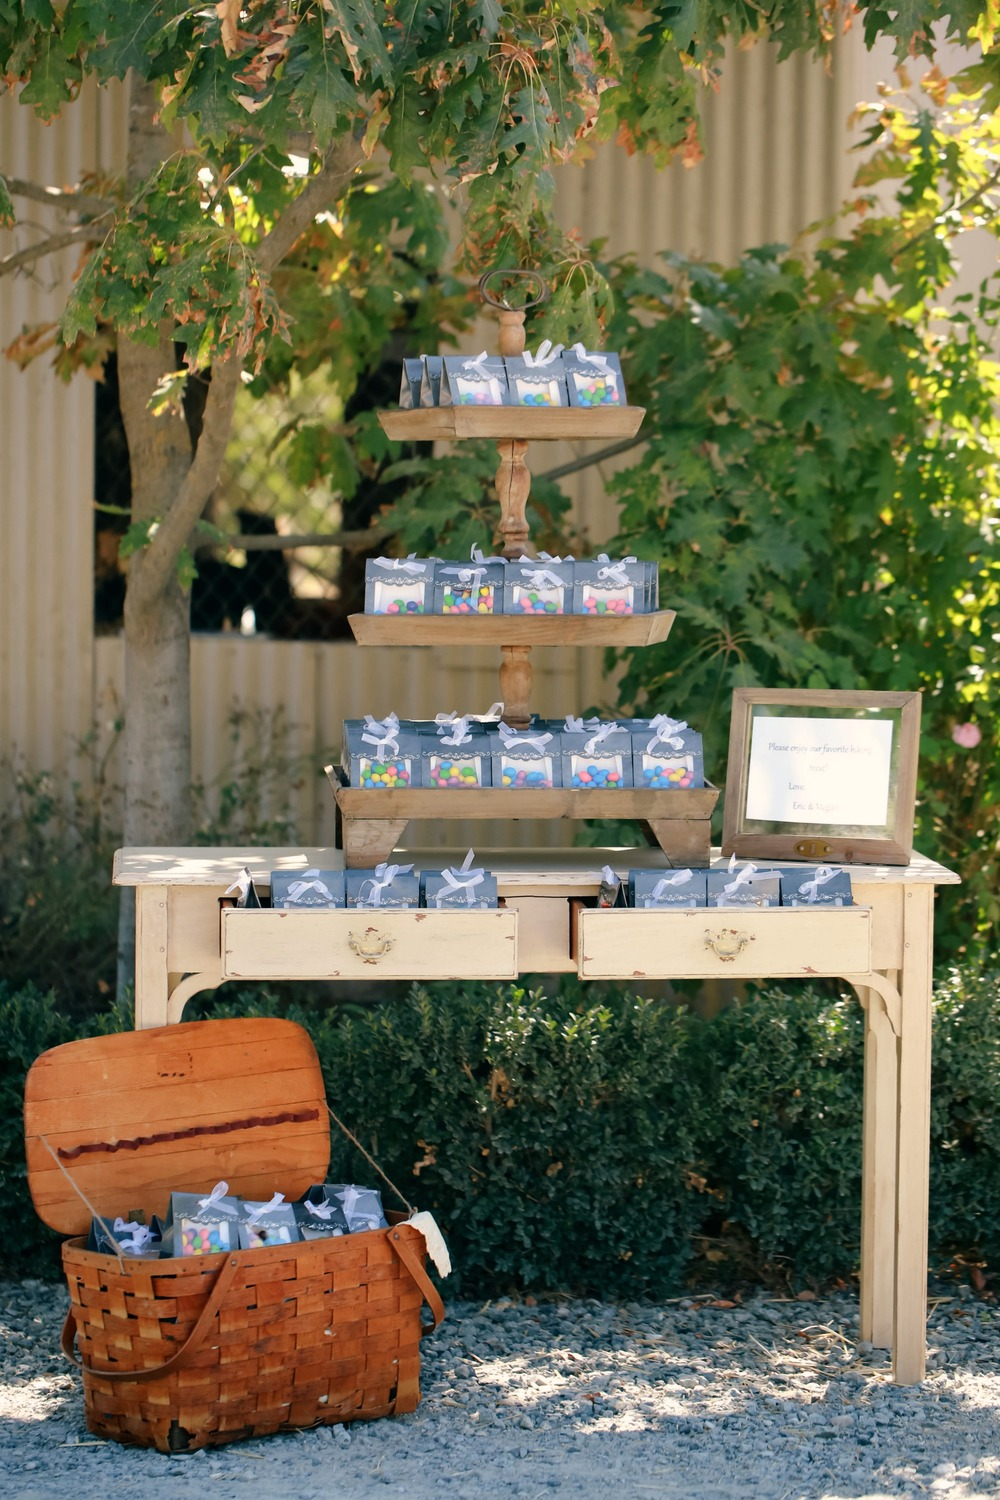 Console Table with Favors.jpg